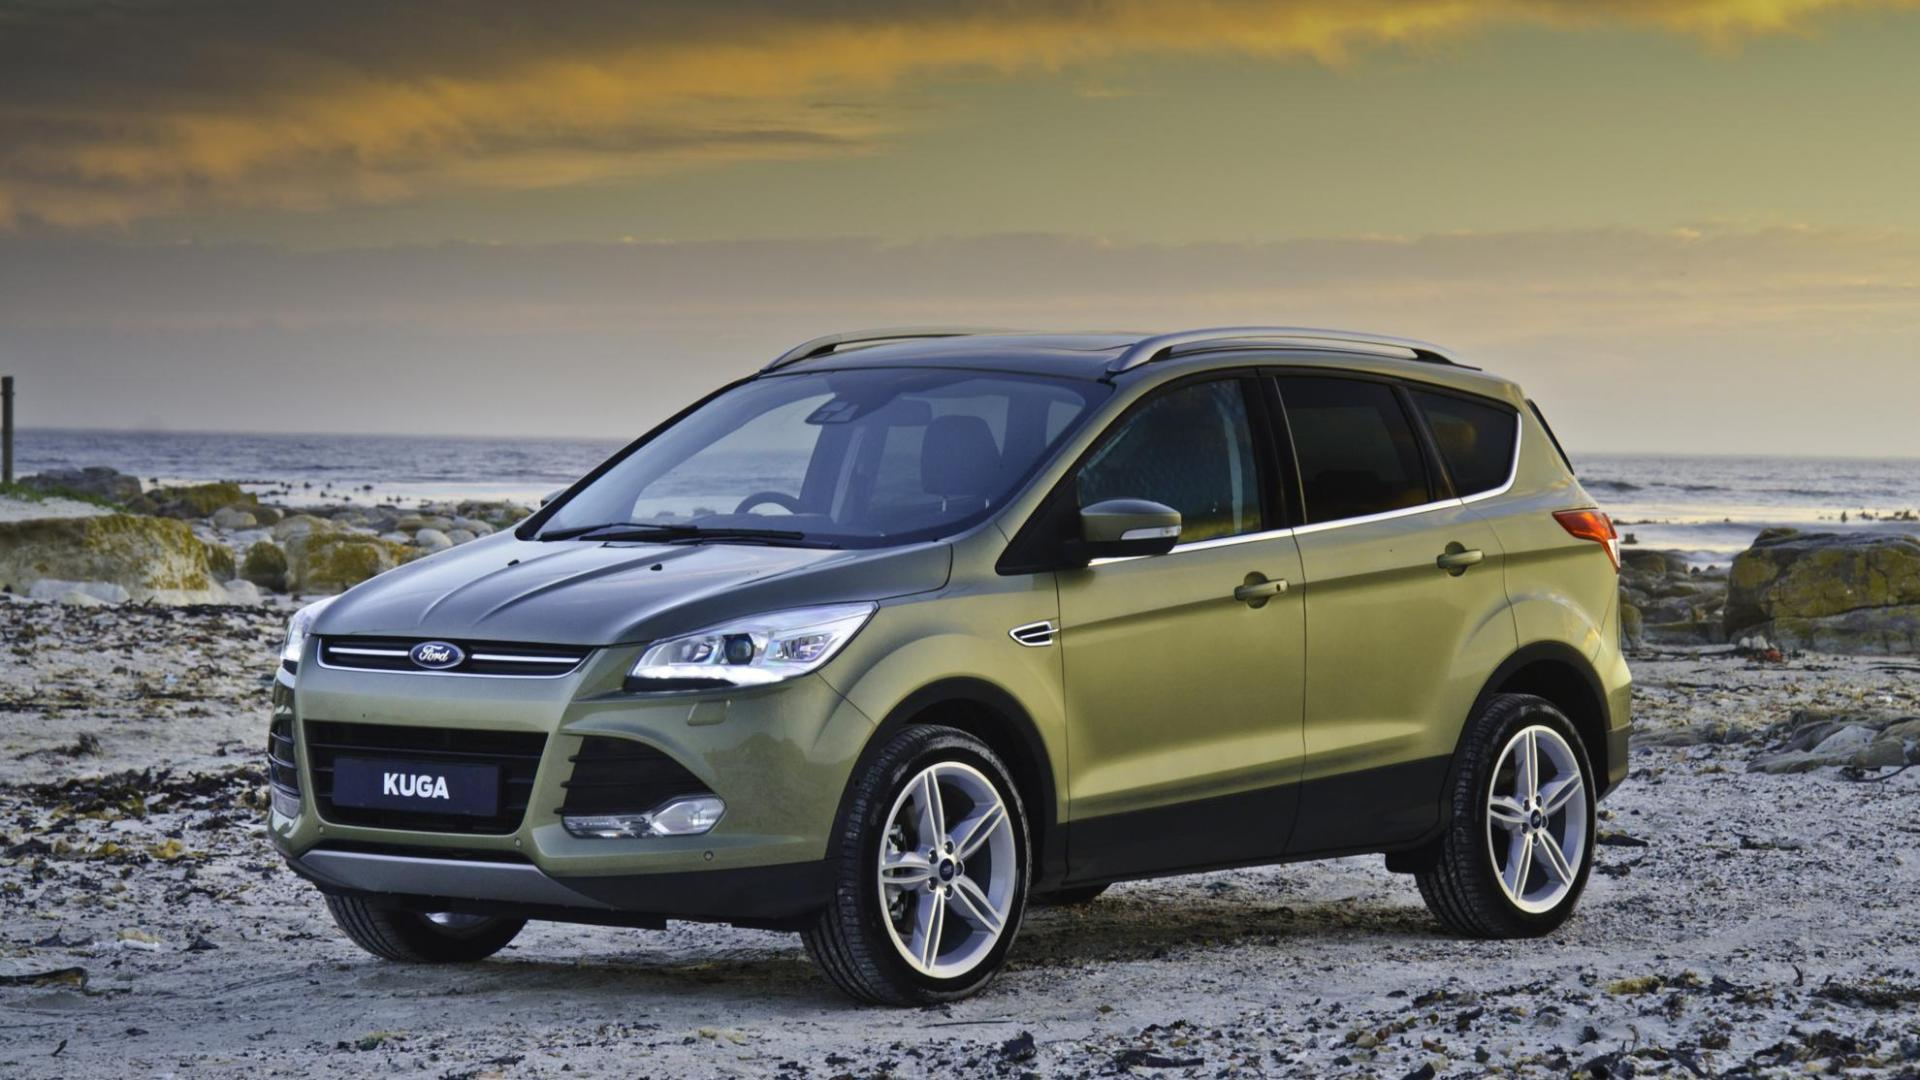 Ford Escape Related Car Wallpapers wallpaper